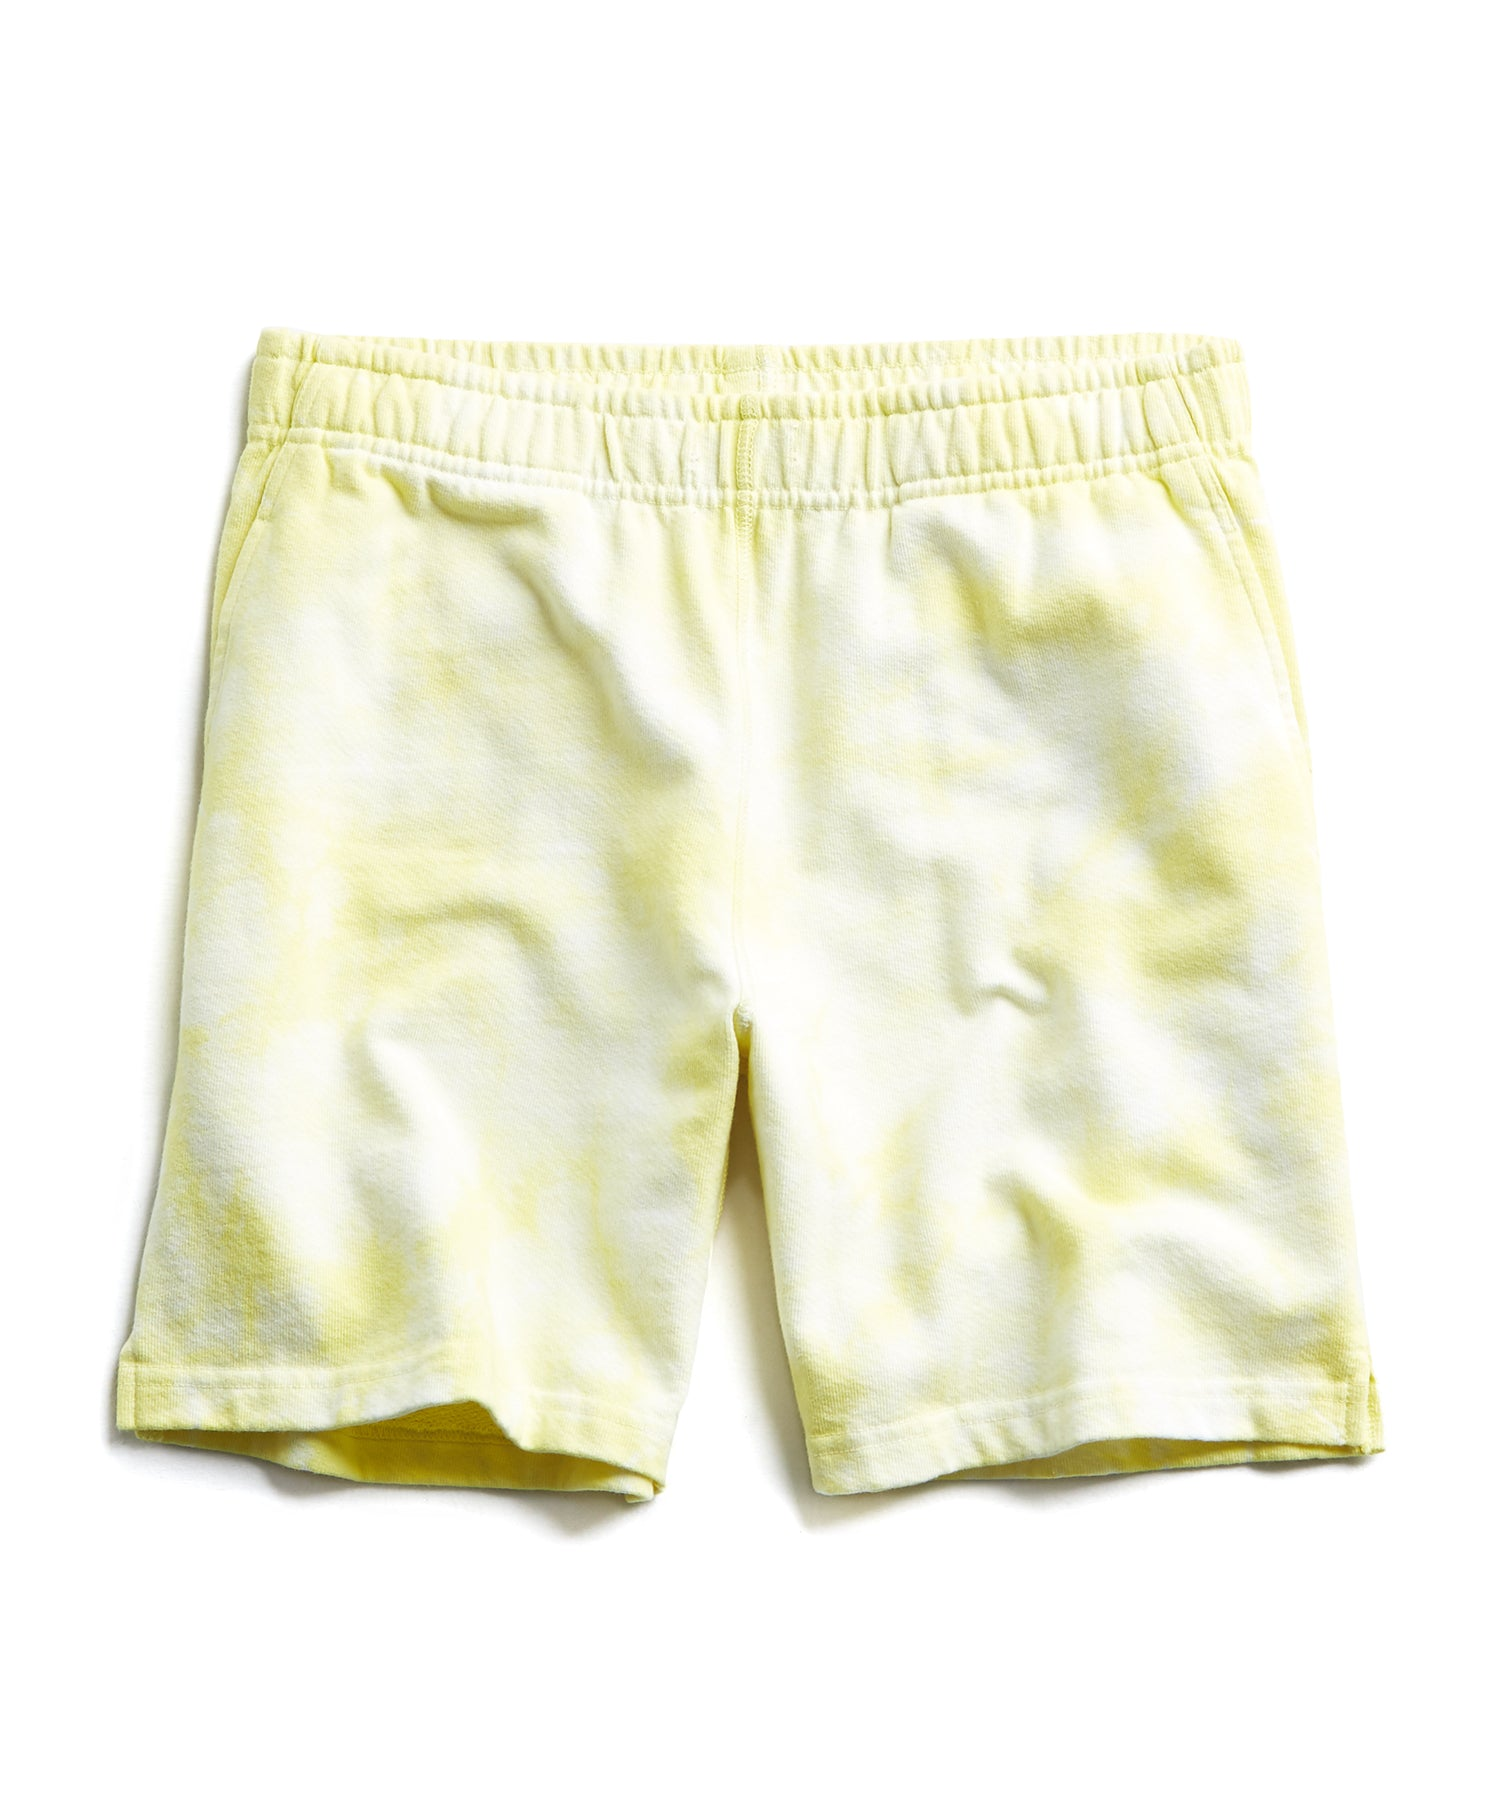 Fresh Lemon Tie Dye Warm Up Short